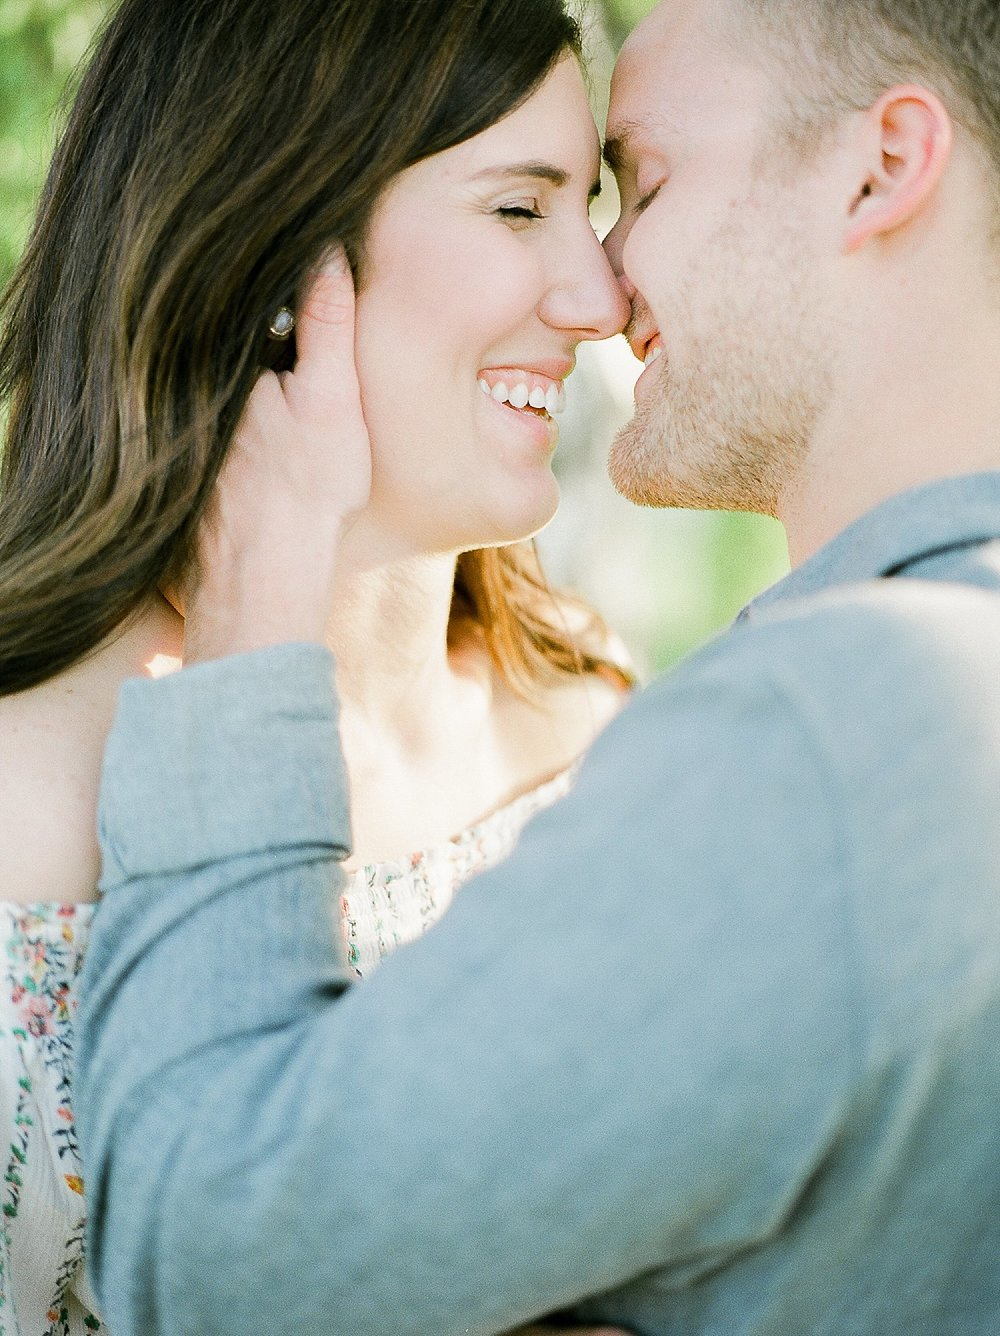 romantic engagement photos, intimate pose ideas engagement, canadian wedding photographer, film wedding photographer, golden hour engagement photos